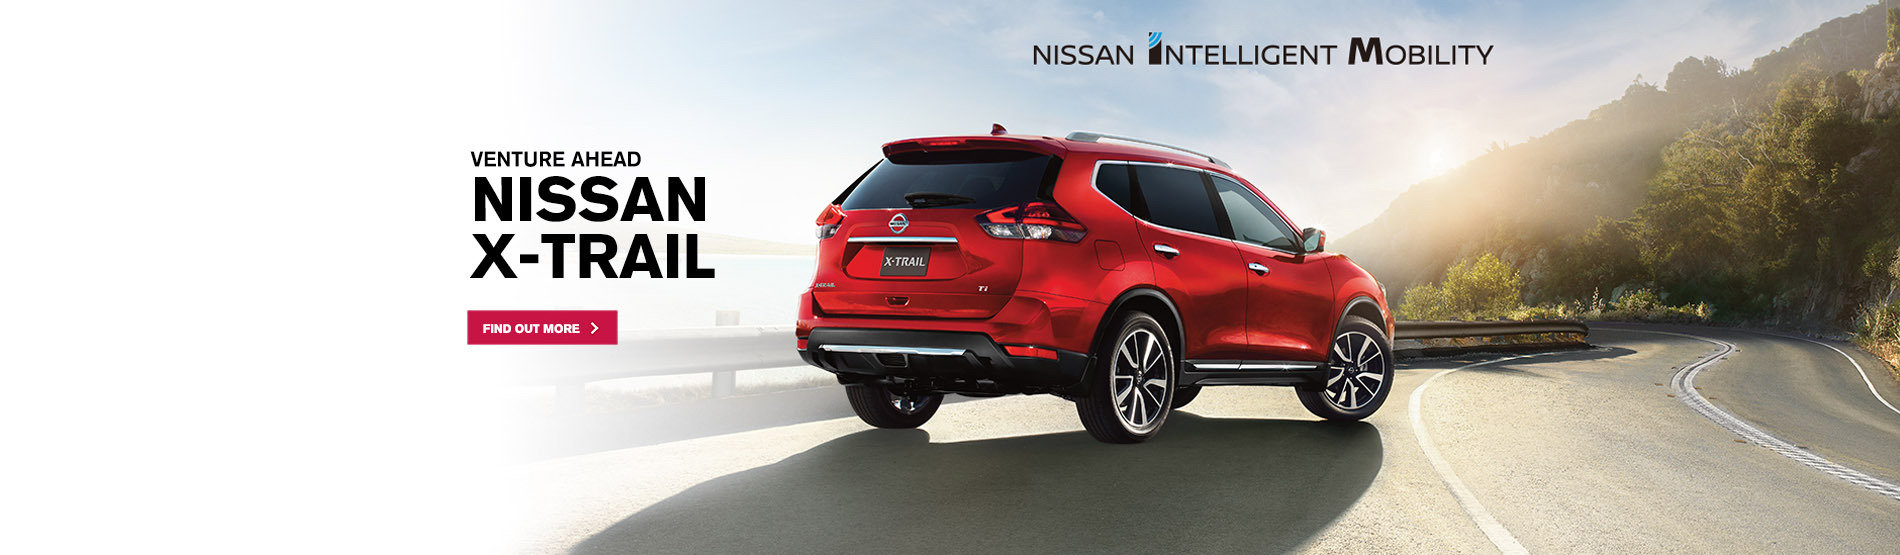 X-Trail now at City Nissan